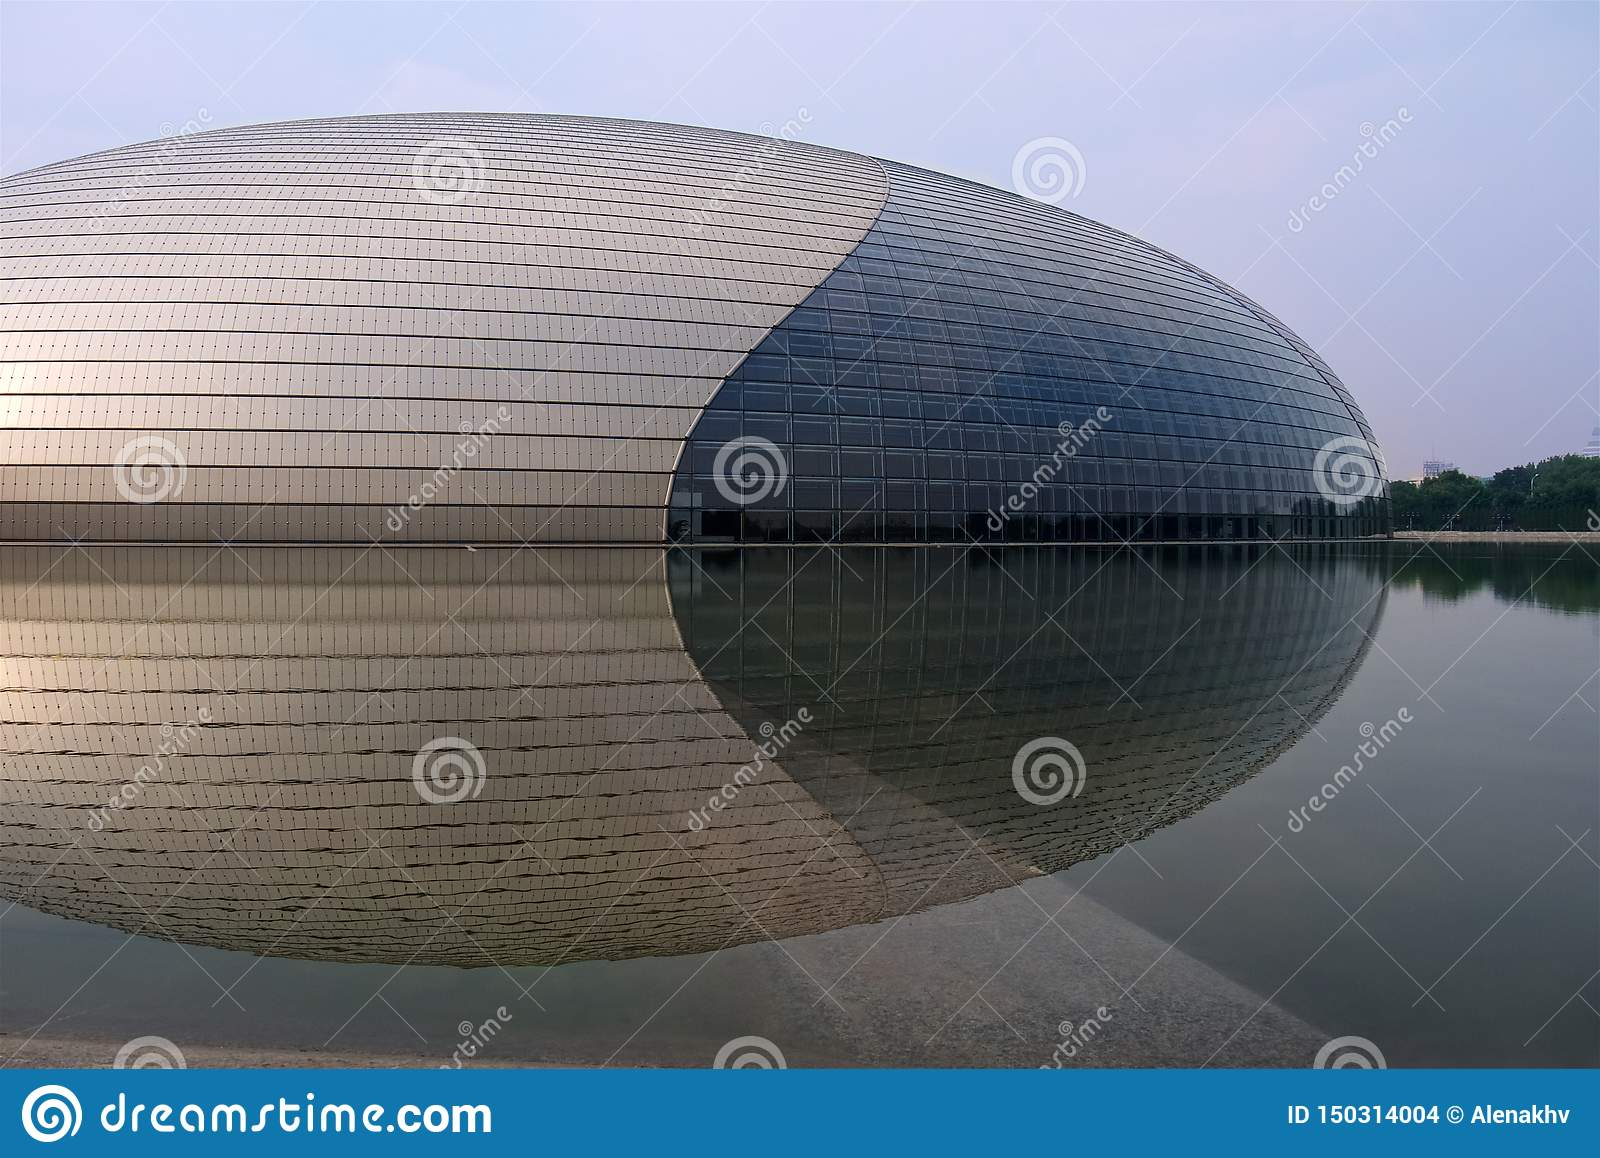 Beijing, China - August 17, 2011: Beijing`s famous architectural building and landmark National Center for the Performing Arts